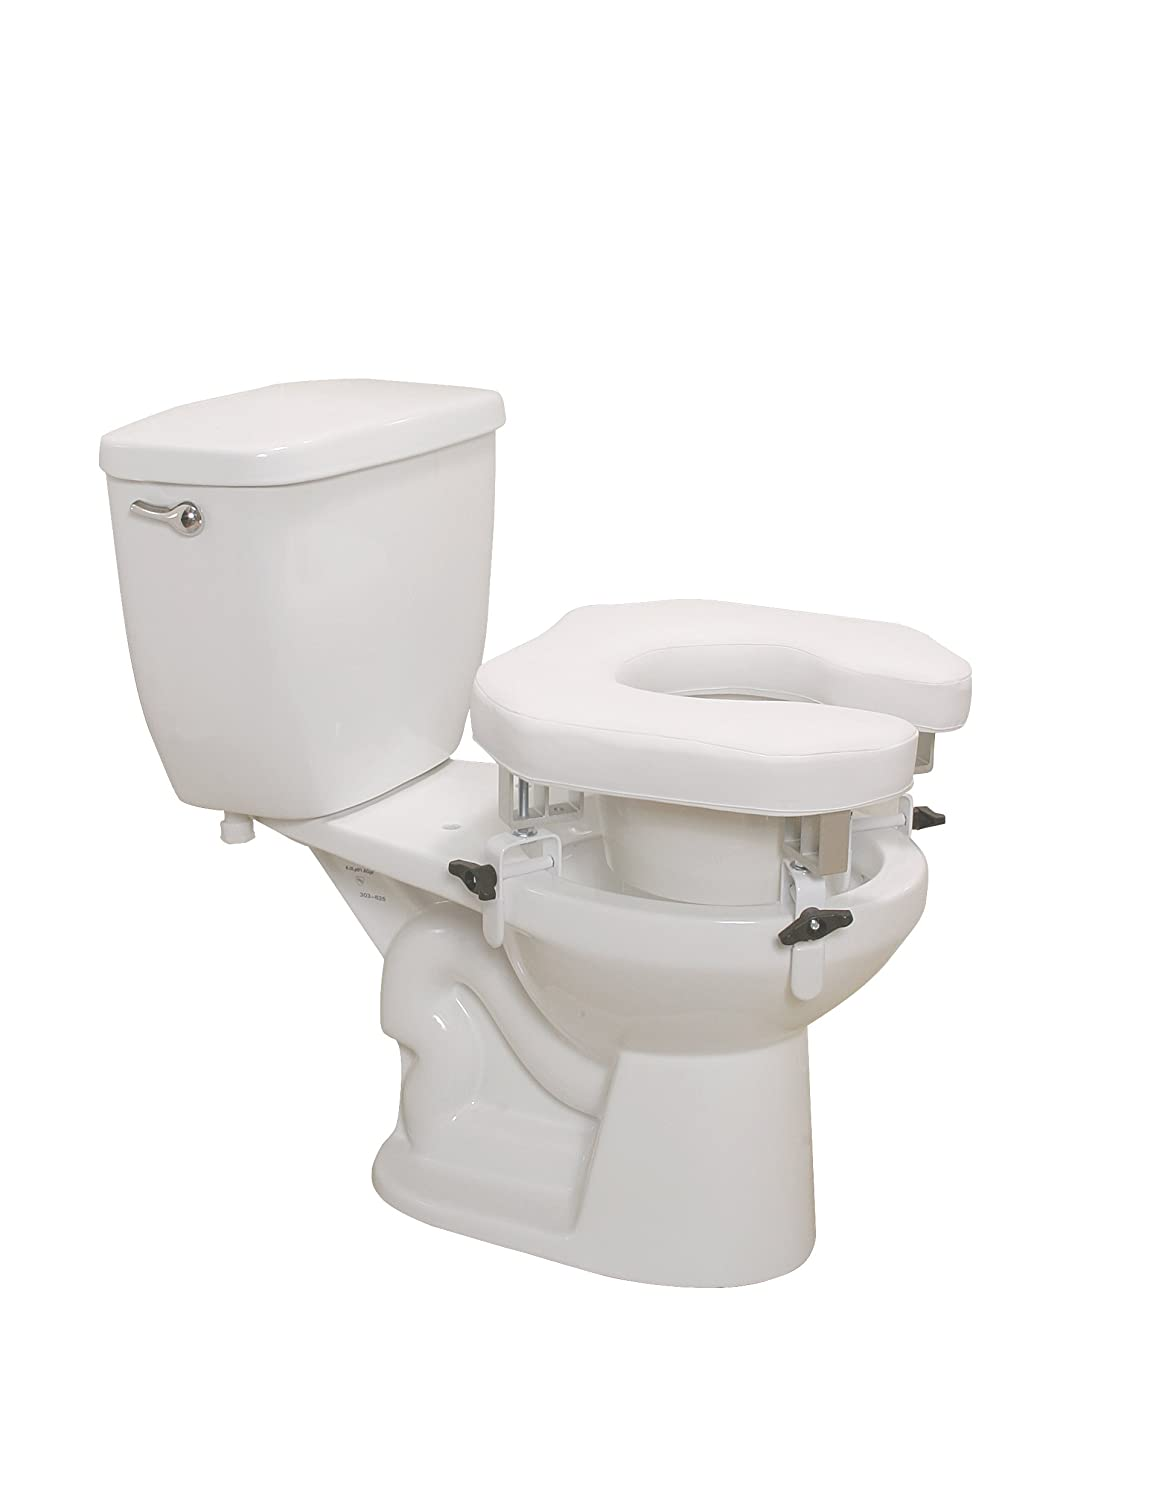 black padded toilet seat. Amazon com  Drive Medical Padded Raised Toilet Seat Riser Standard Health Personal Care